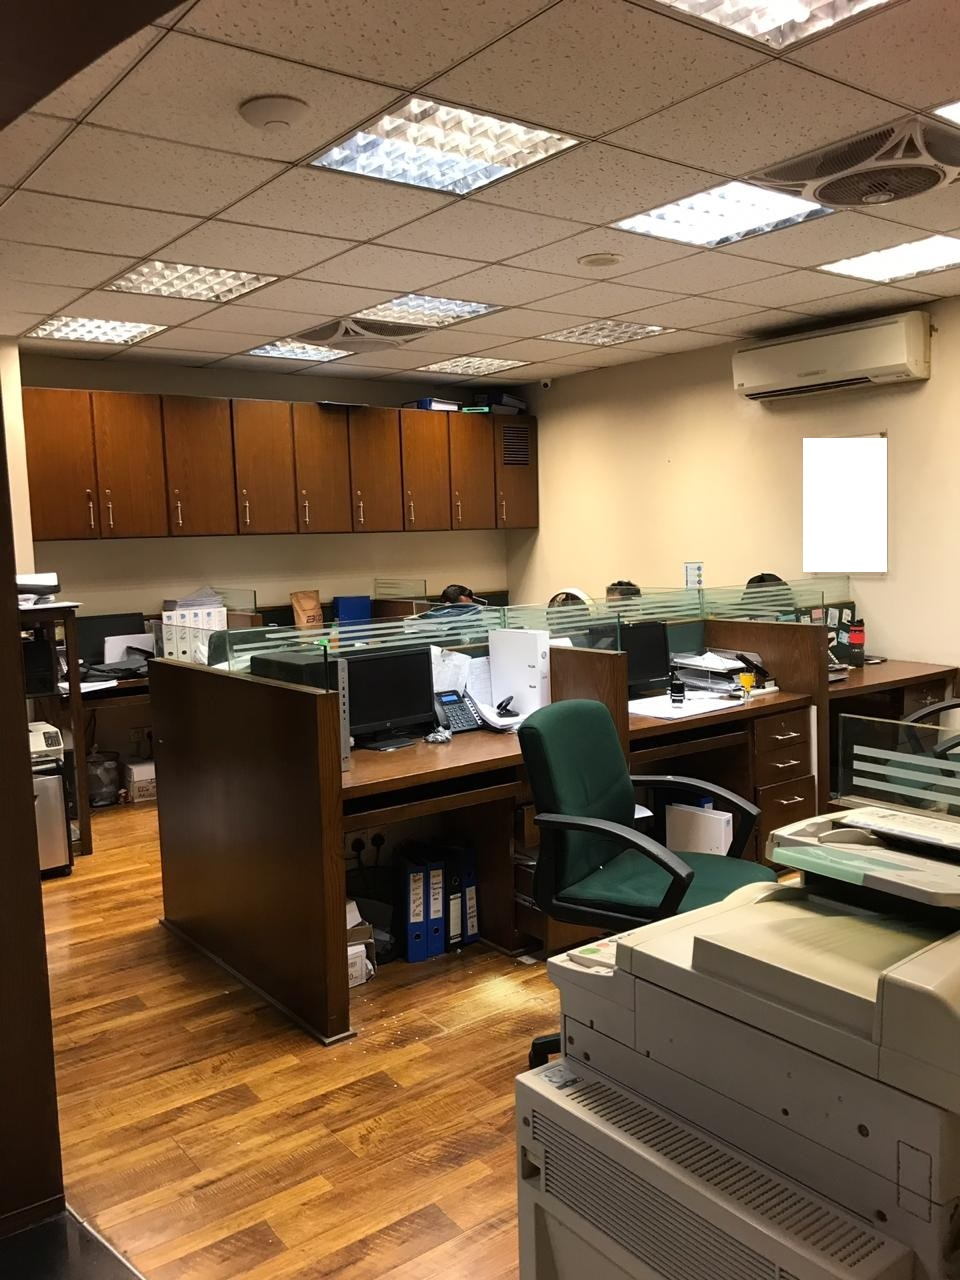 10,000 sq-ft Office Space on Rent in Clifton Executive Office Project